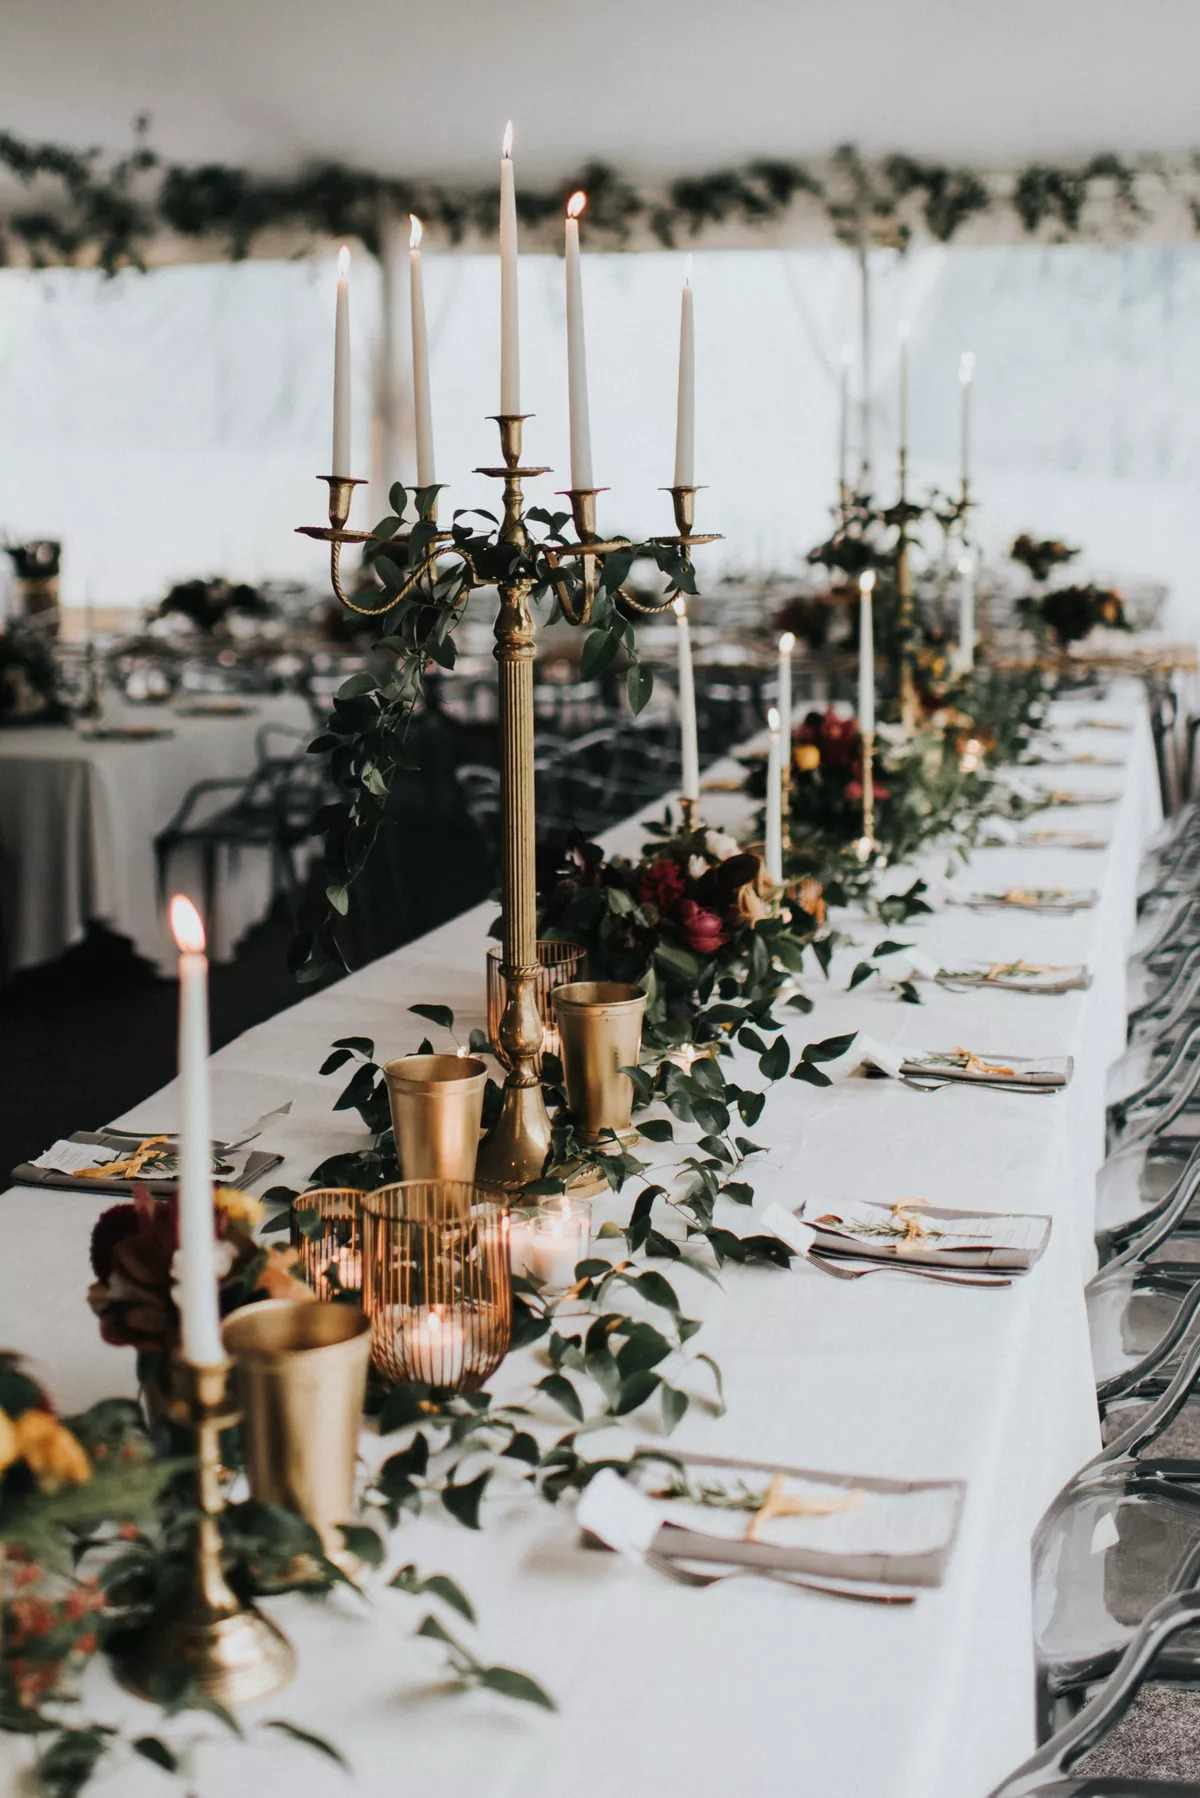 Candlelit reception space featuring dreamy tablescape